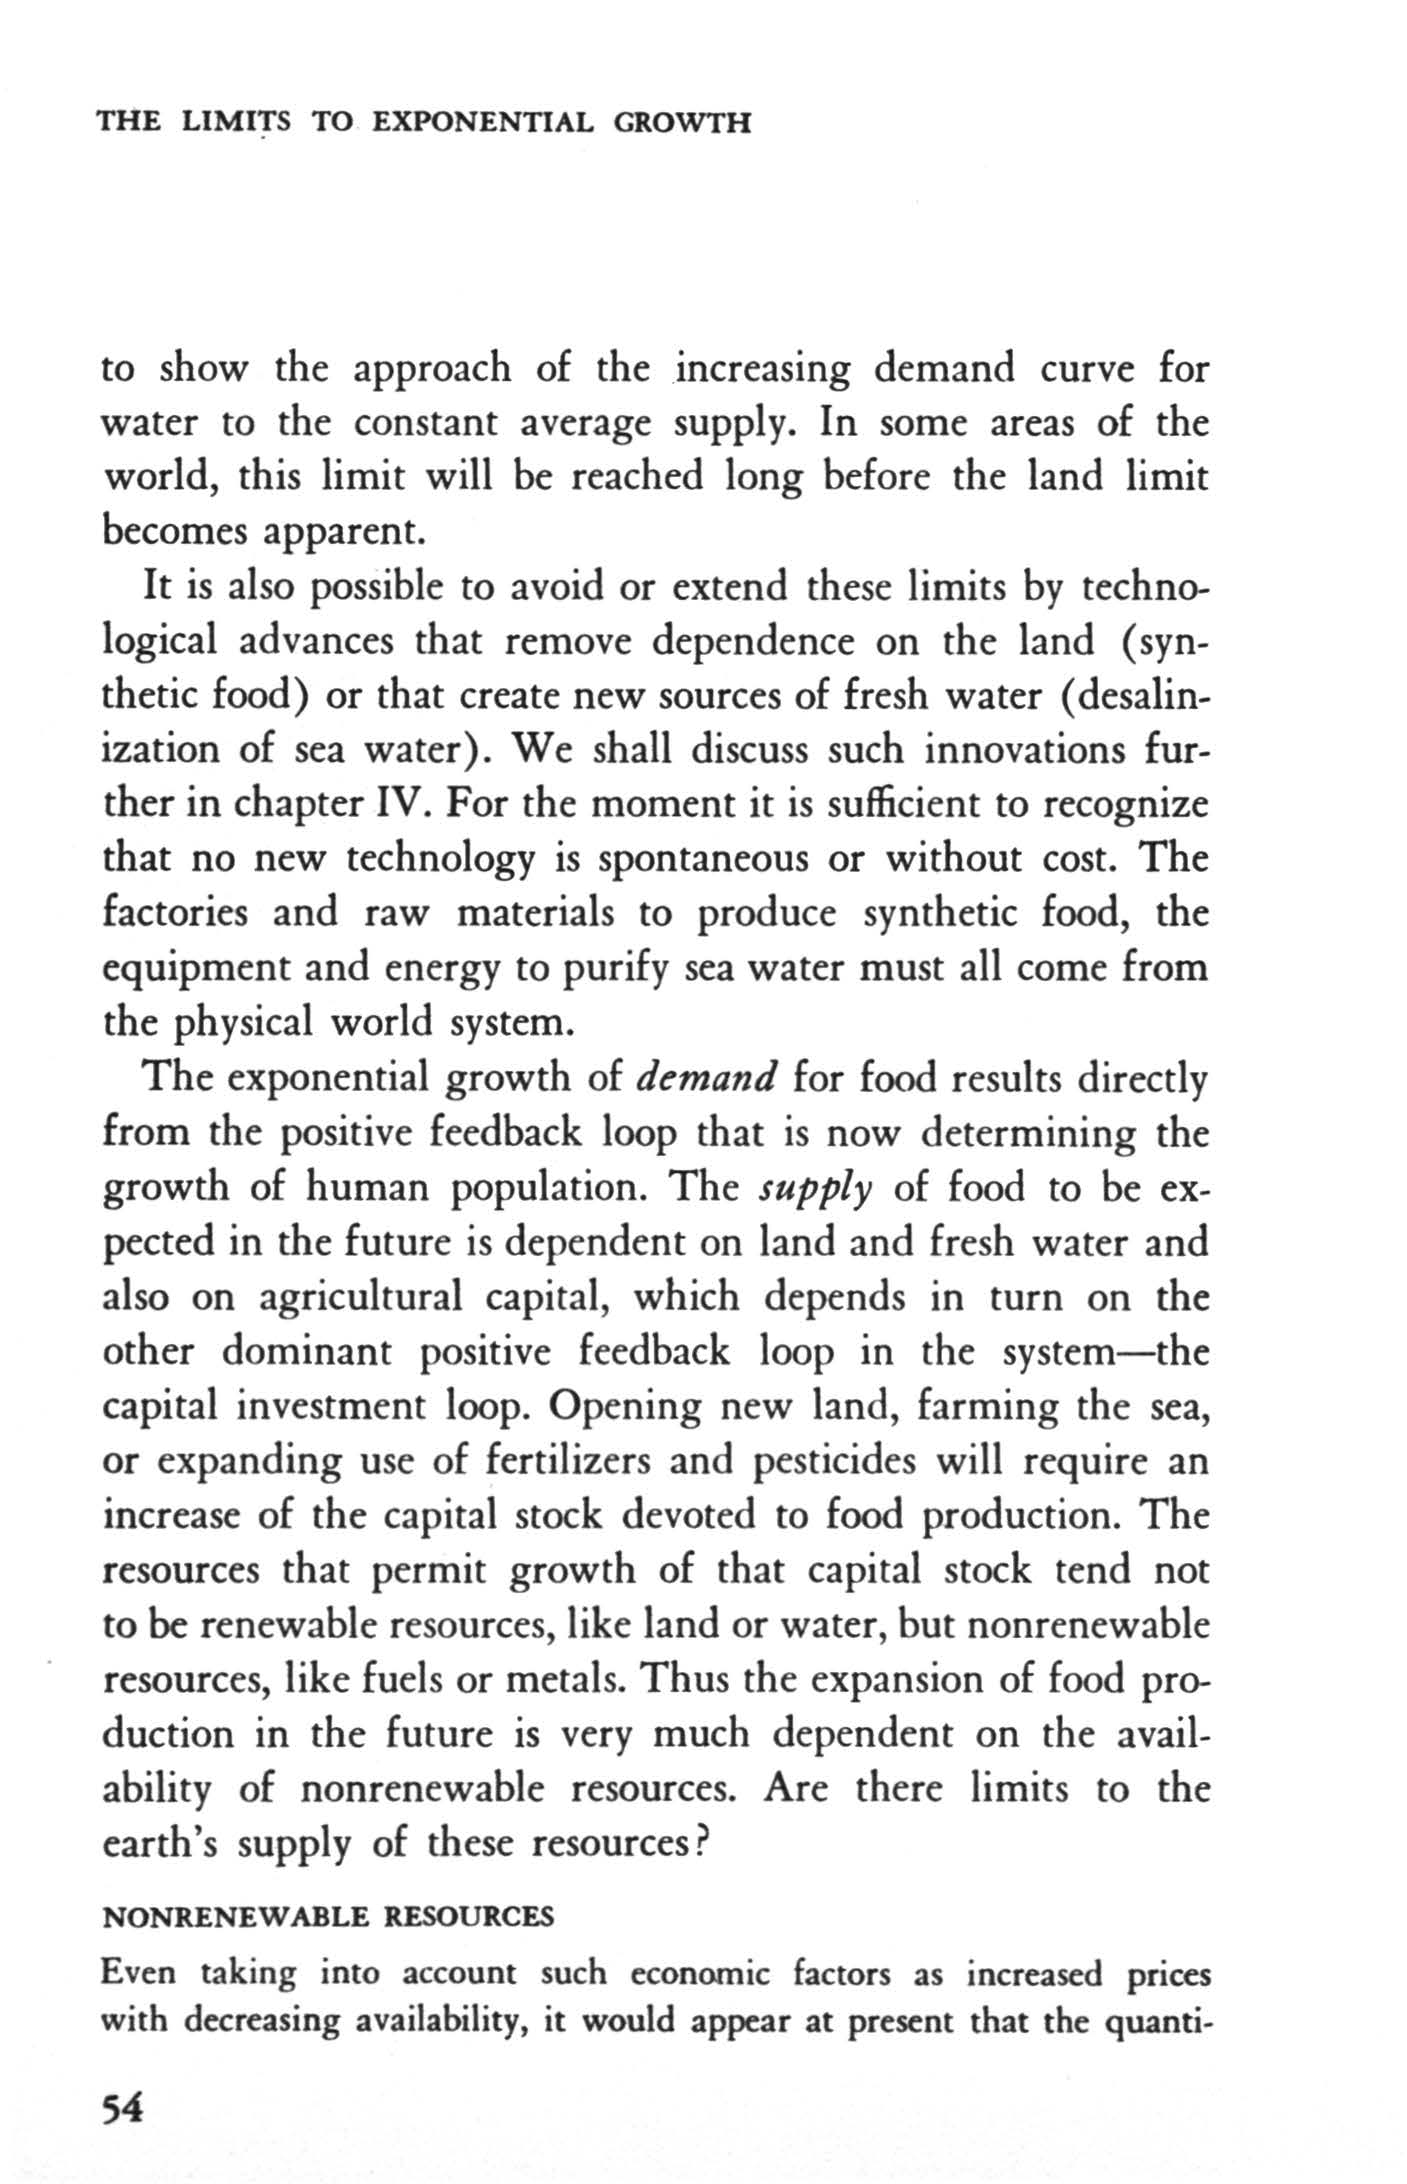 THE LMTS TO EXPONENTAL GROWTH to show the approach of the increasing demand curve for water to the constant average supply.